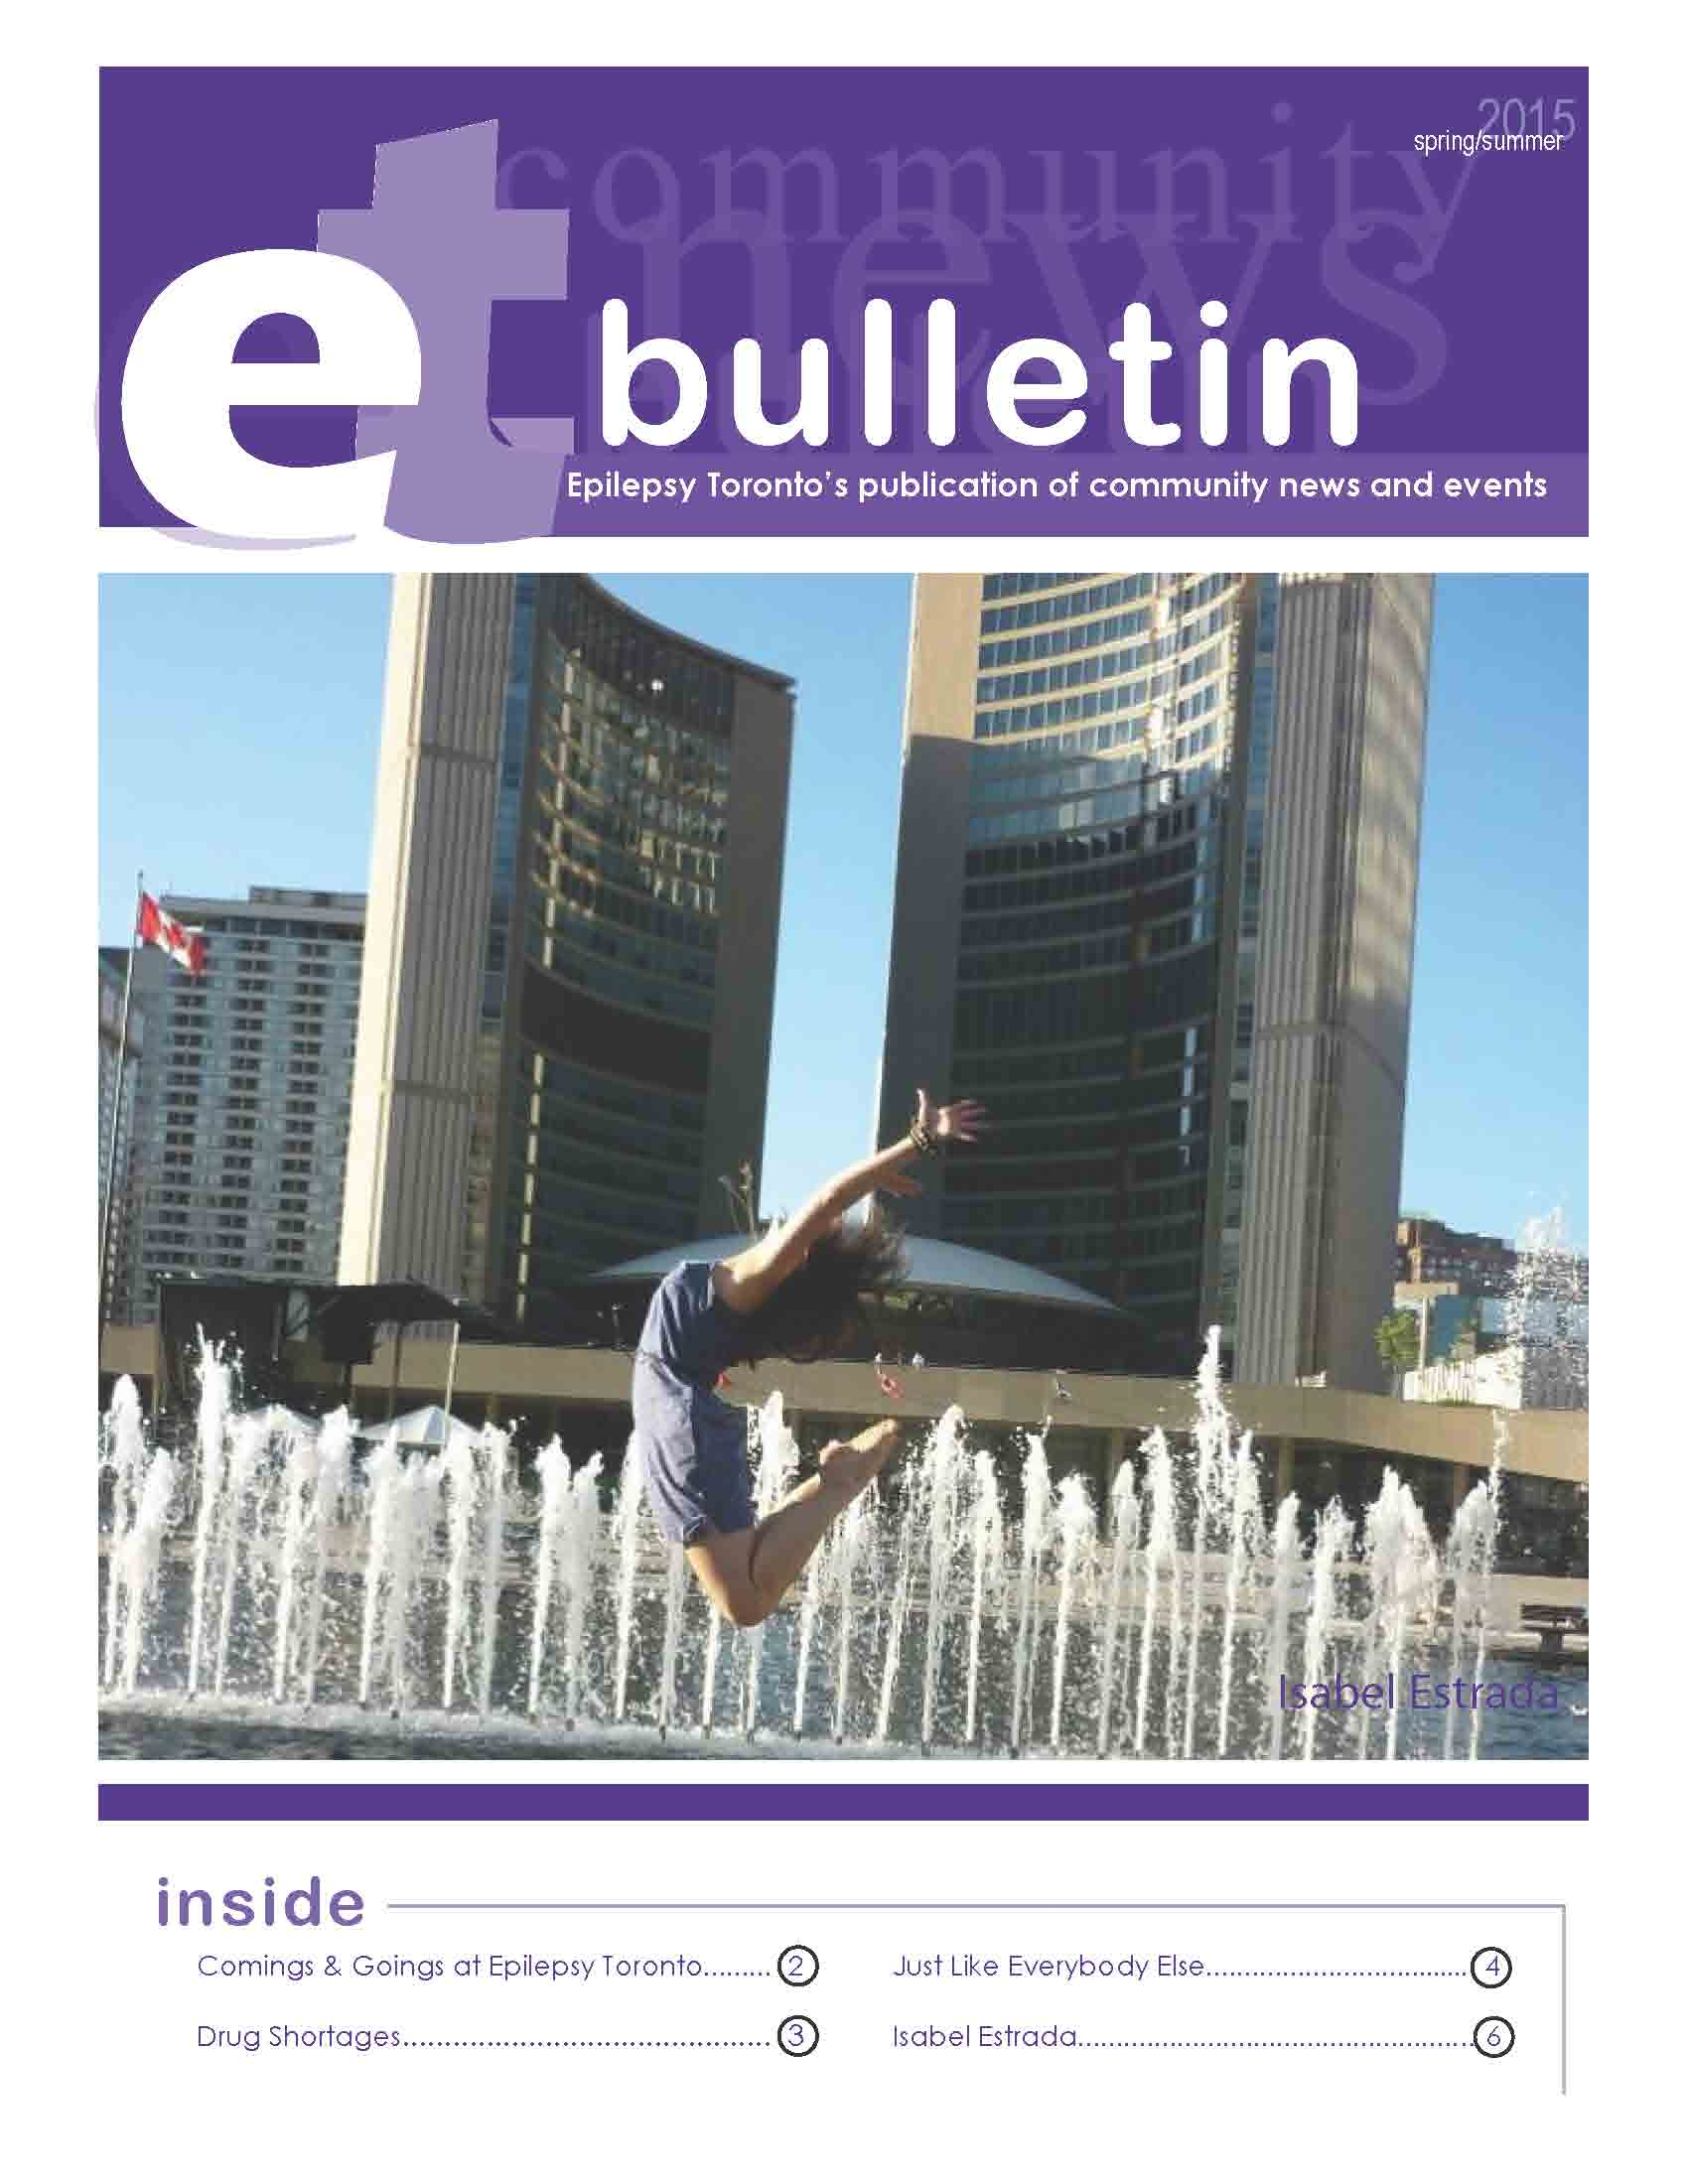 Photo of a woman jumping in front of water on a page of 2015 Epilepsy Toronto bulletin